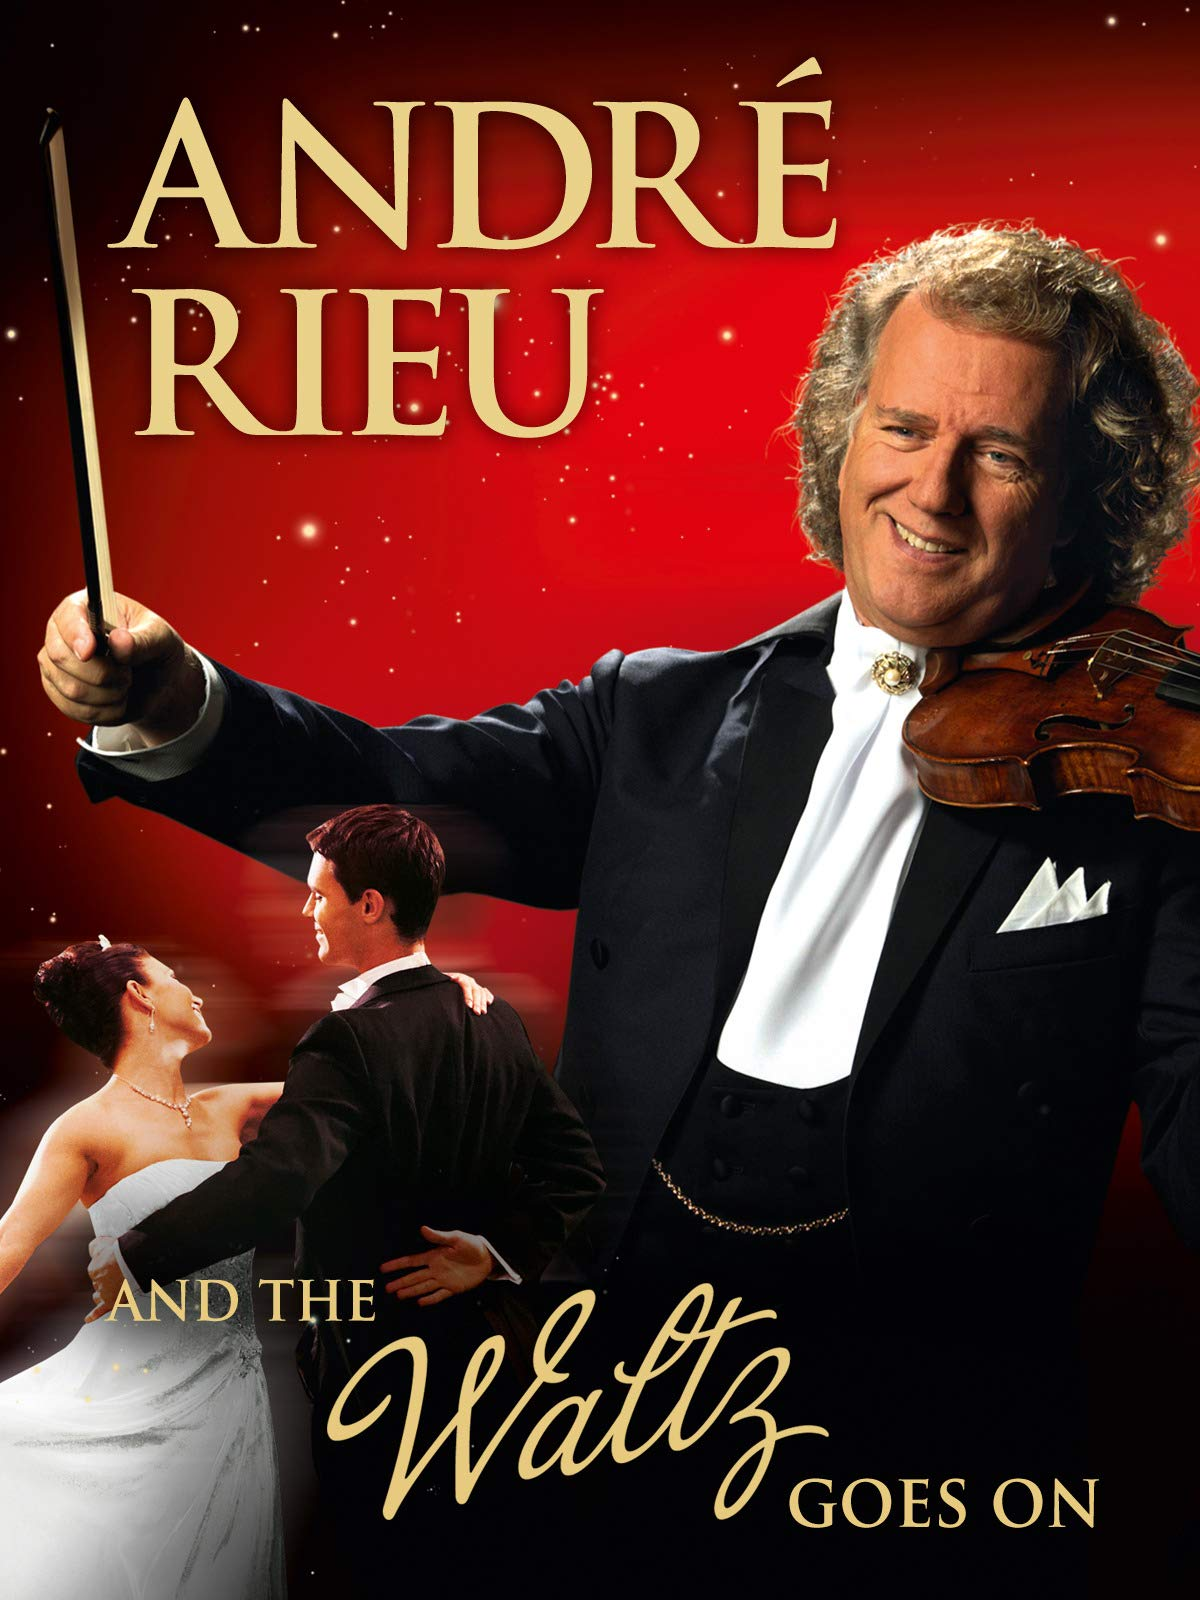 André Rieu And His Johann Strauss Orchestra - And The Waltz Goes On on Amazon Prime Instant Video UK